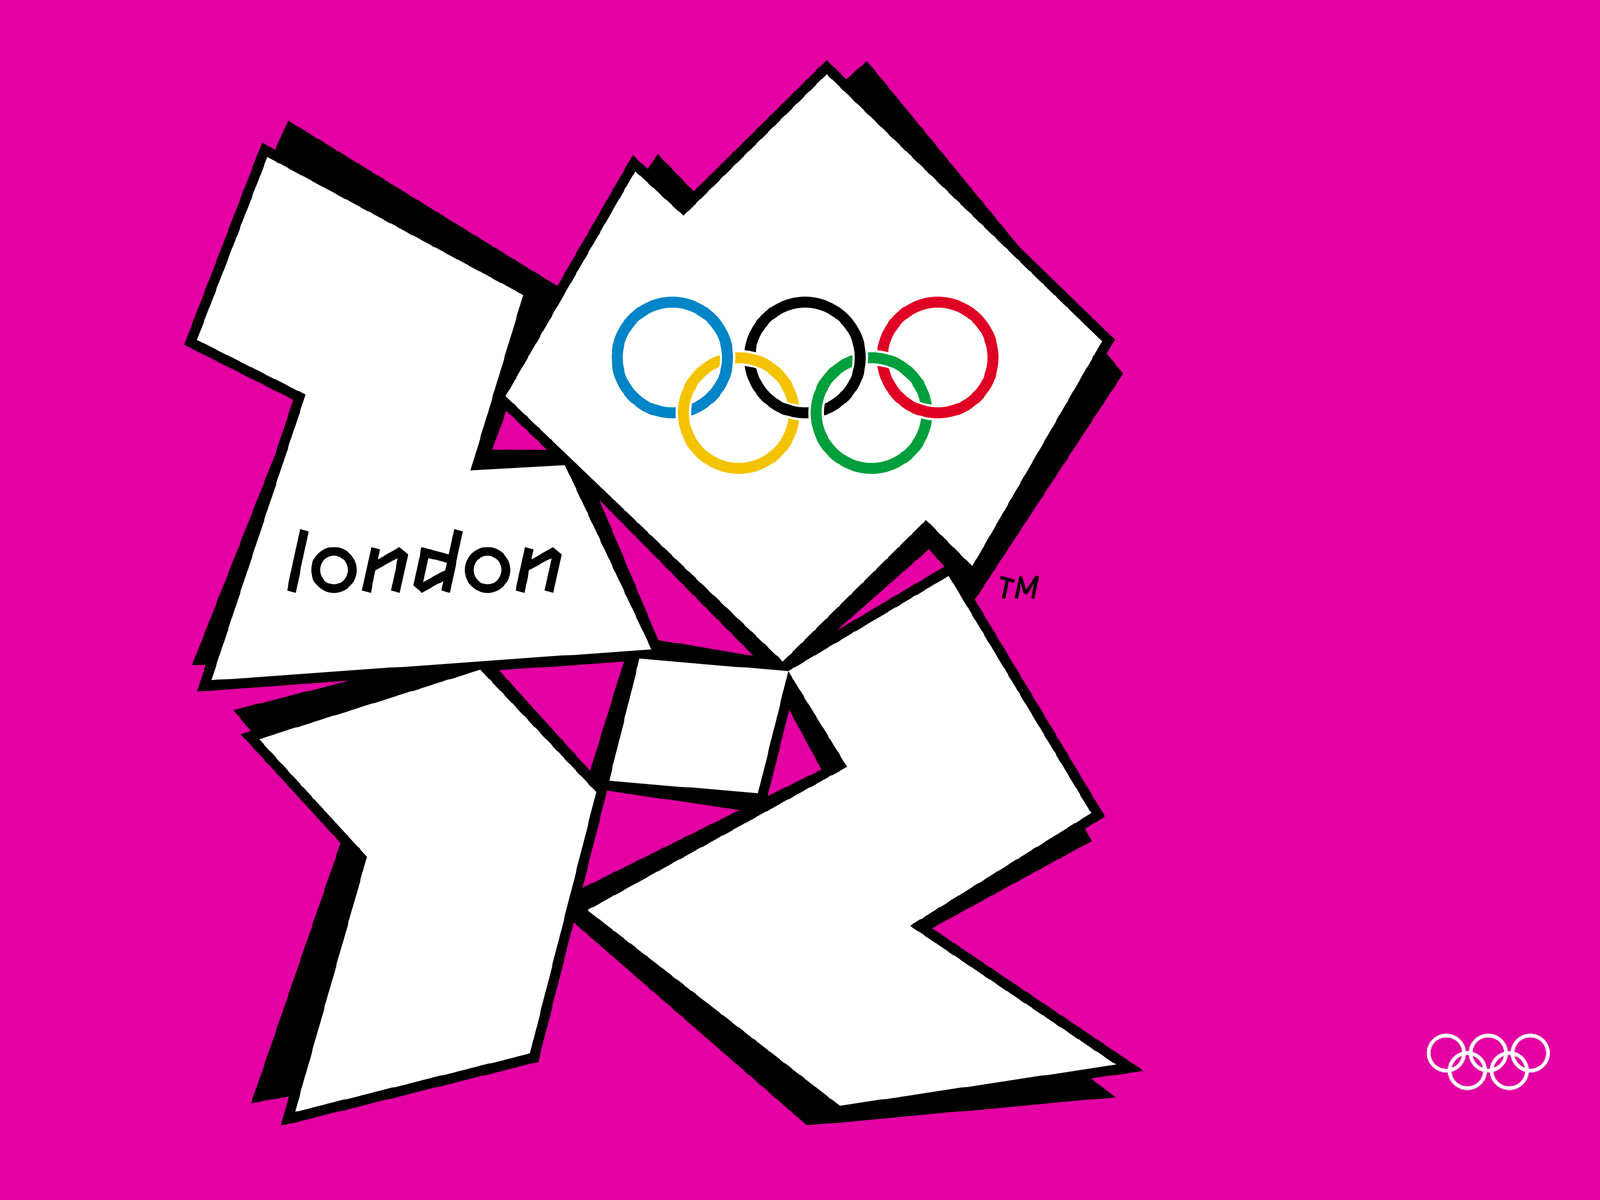 London Logo Wallpaper London 2012 Olympics Pink Logo